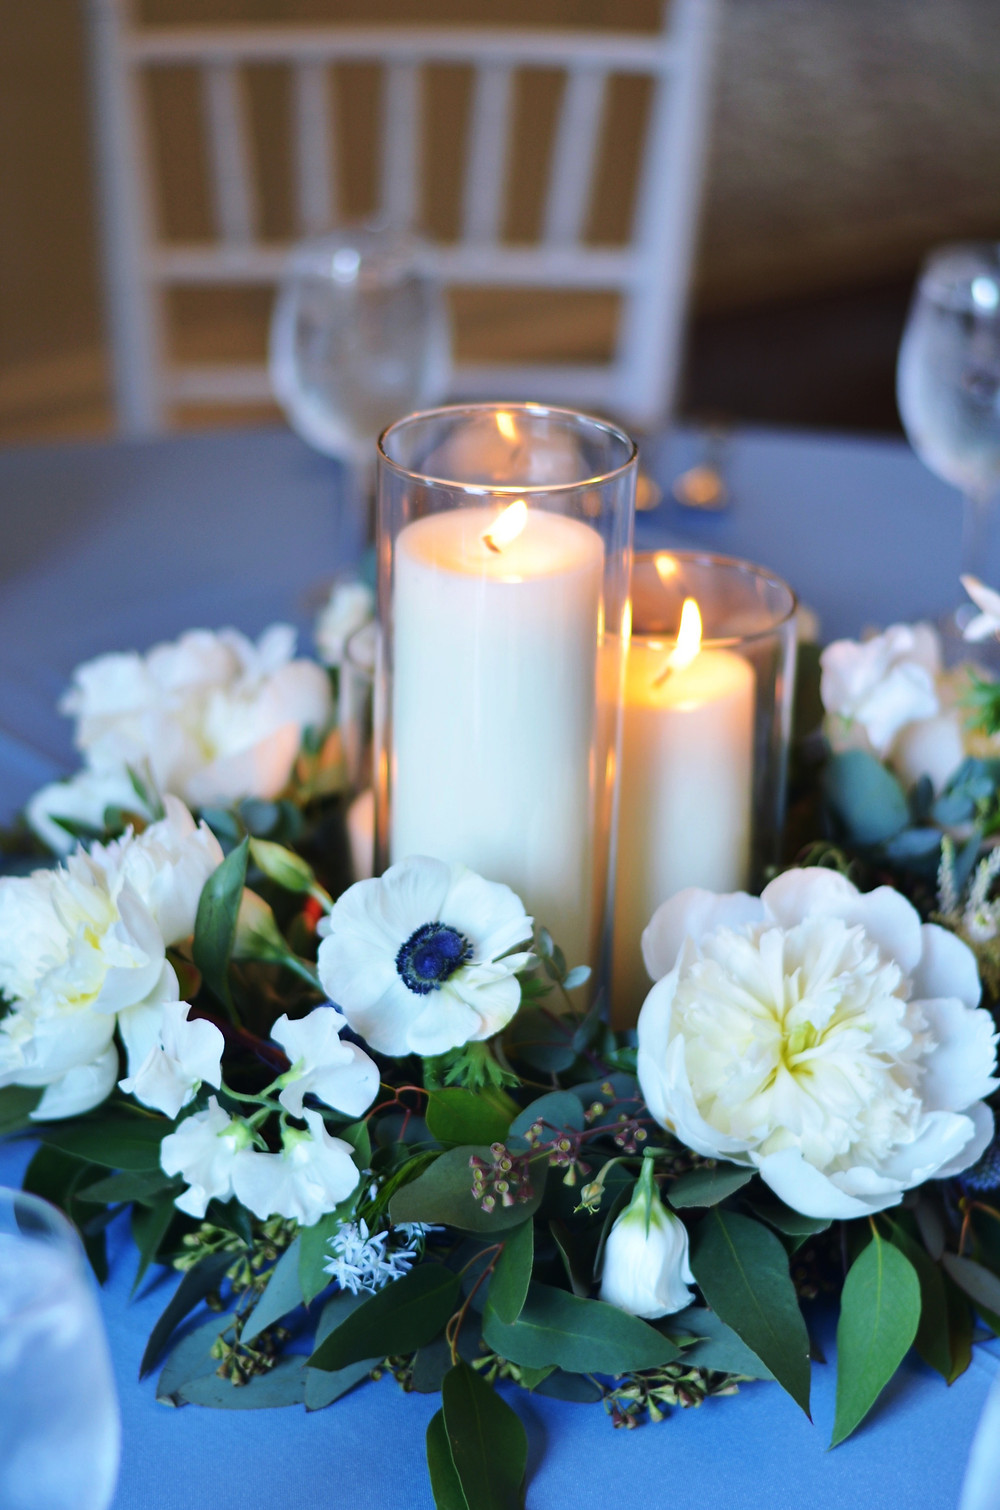 Low centerpieces with white Peony and pillar candles at Eolia Mansion, Harkness State